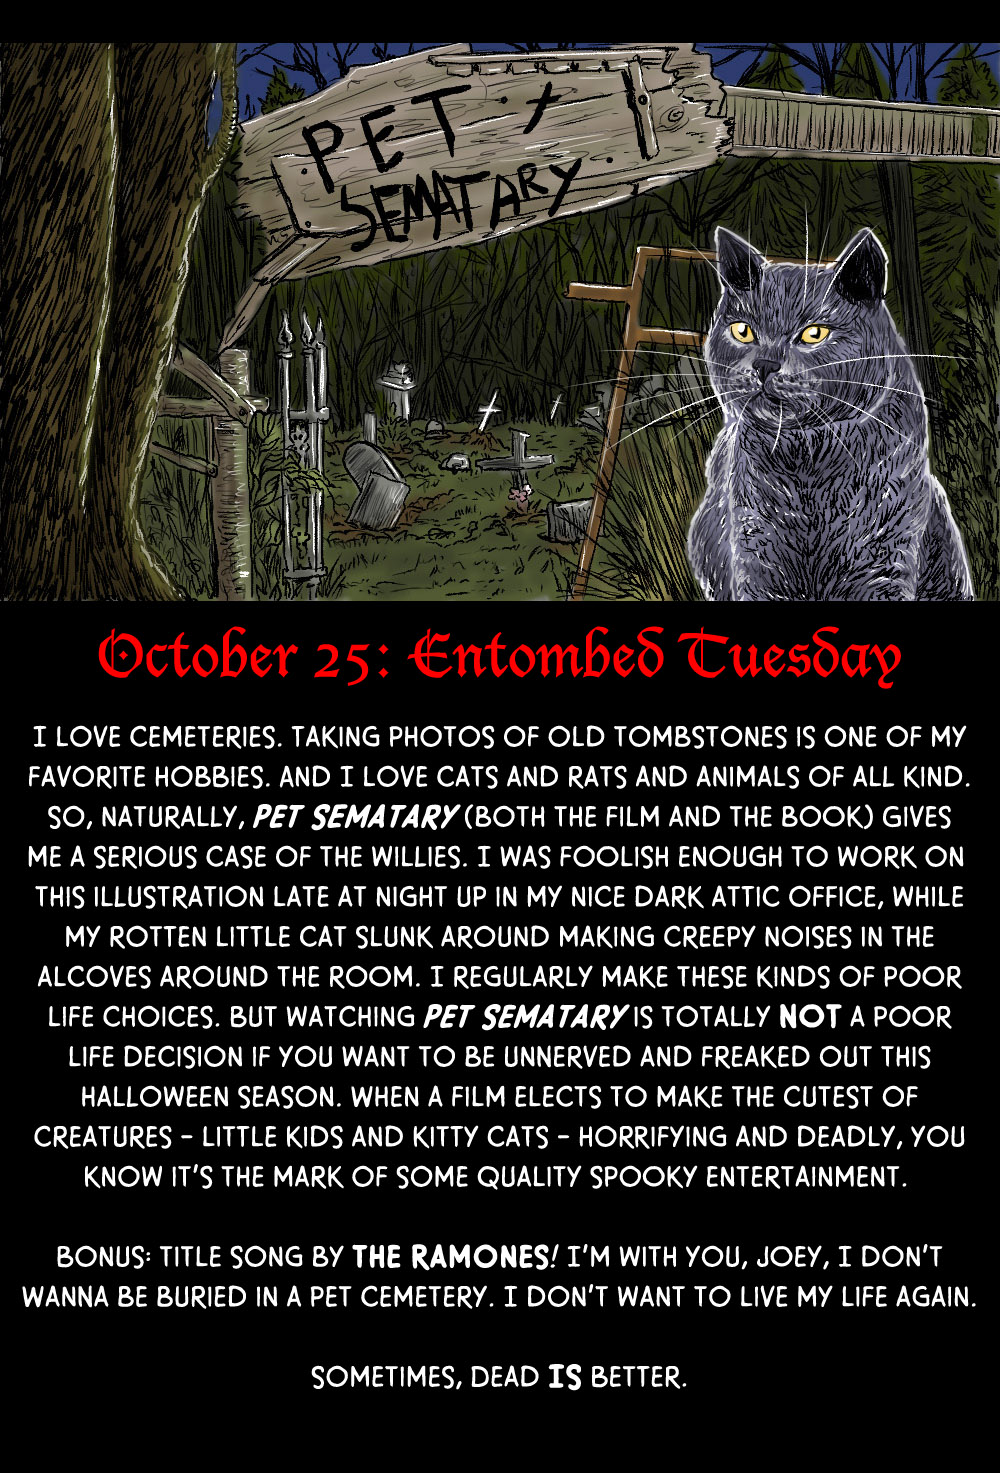 October 25: Entombed Tuesday at the Pet Sematary